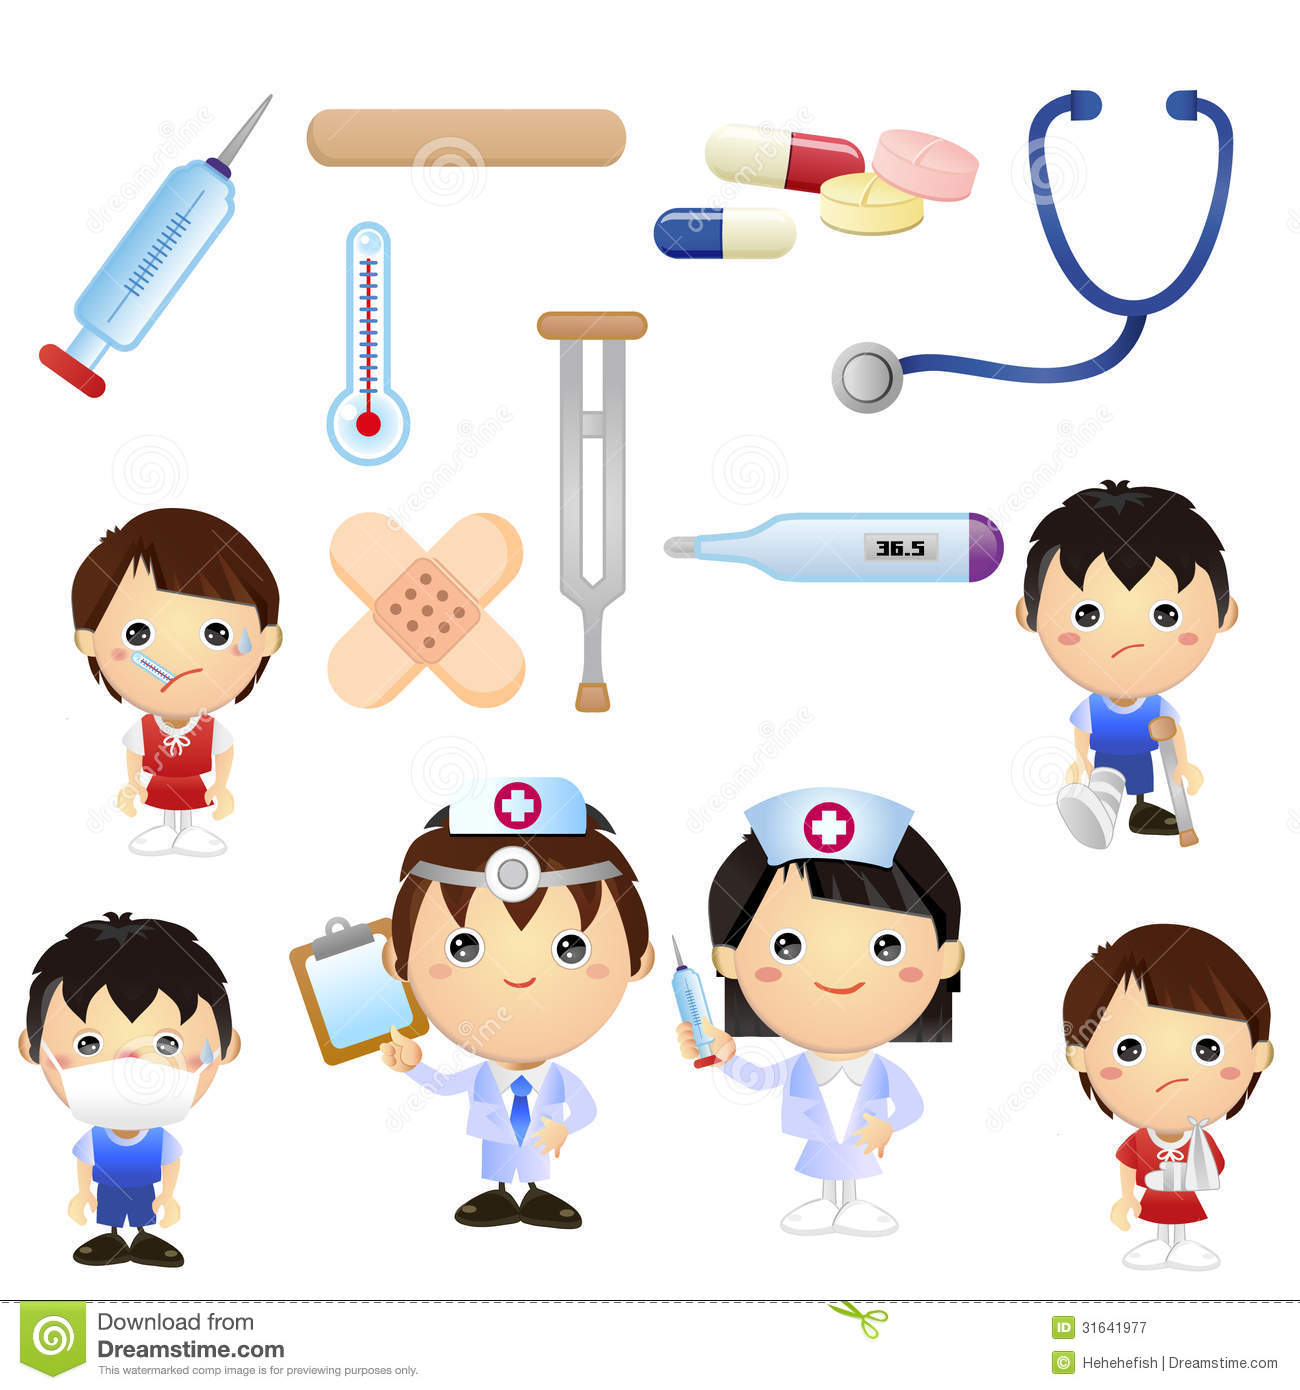 Free Cartoon Medicine Cliparts, Download Free Clip Art, Free.